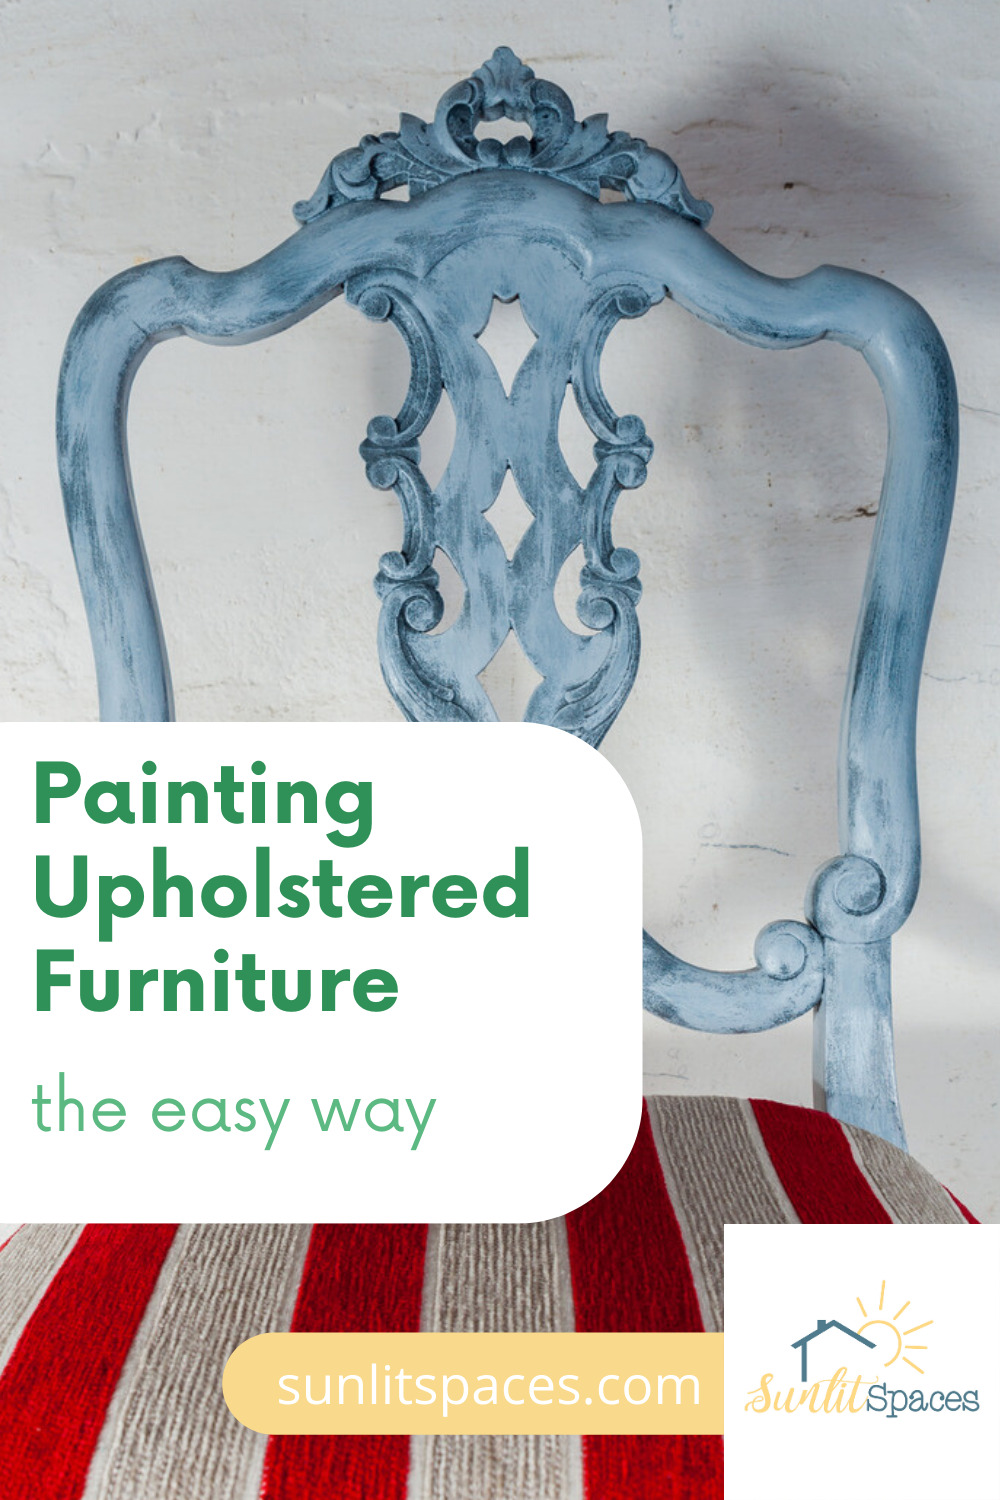 Painting upholstered furniture is easy when you know the best techniques and products to use. See what you can do to give your tired upholstery new life with paint! #sunlitspacesblog #paintingupholsteredfurniture